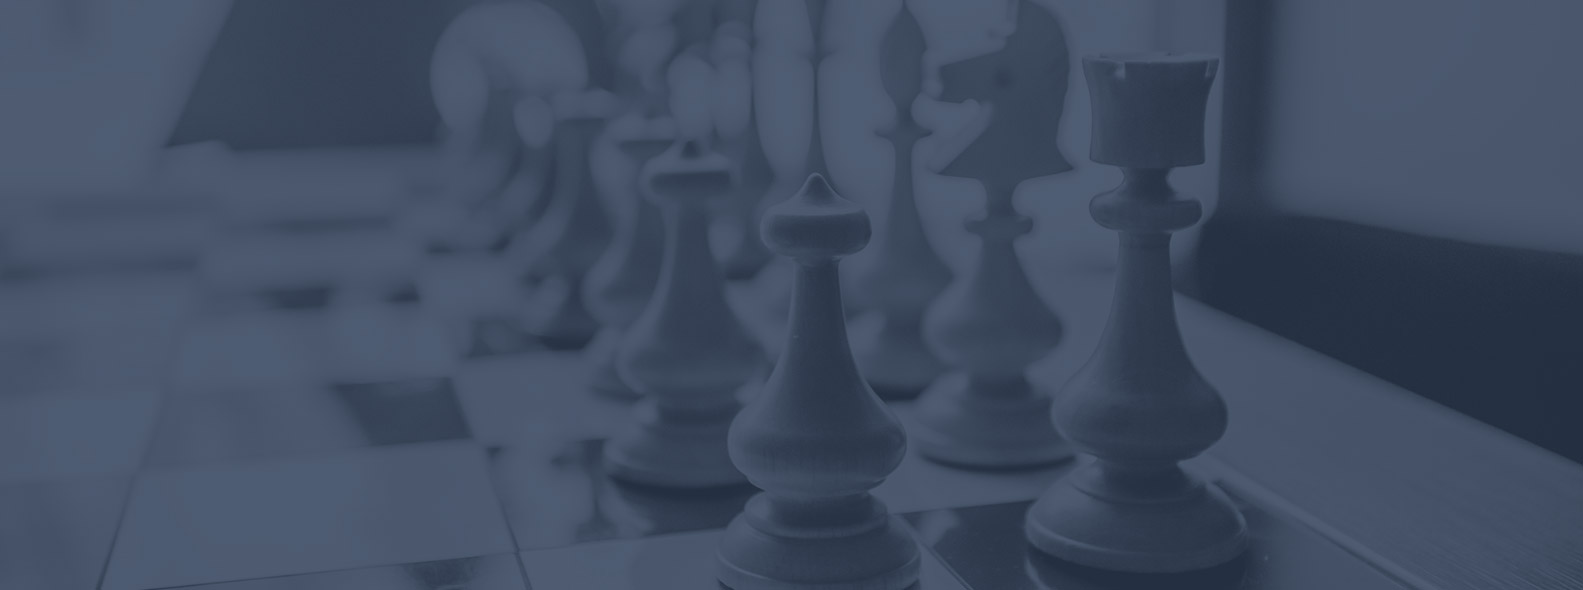 Chess pieces on a chess board representing Diligentiam is a risk assessment consulting firm offering due diligence for your business